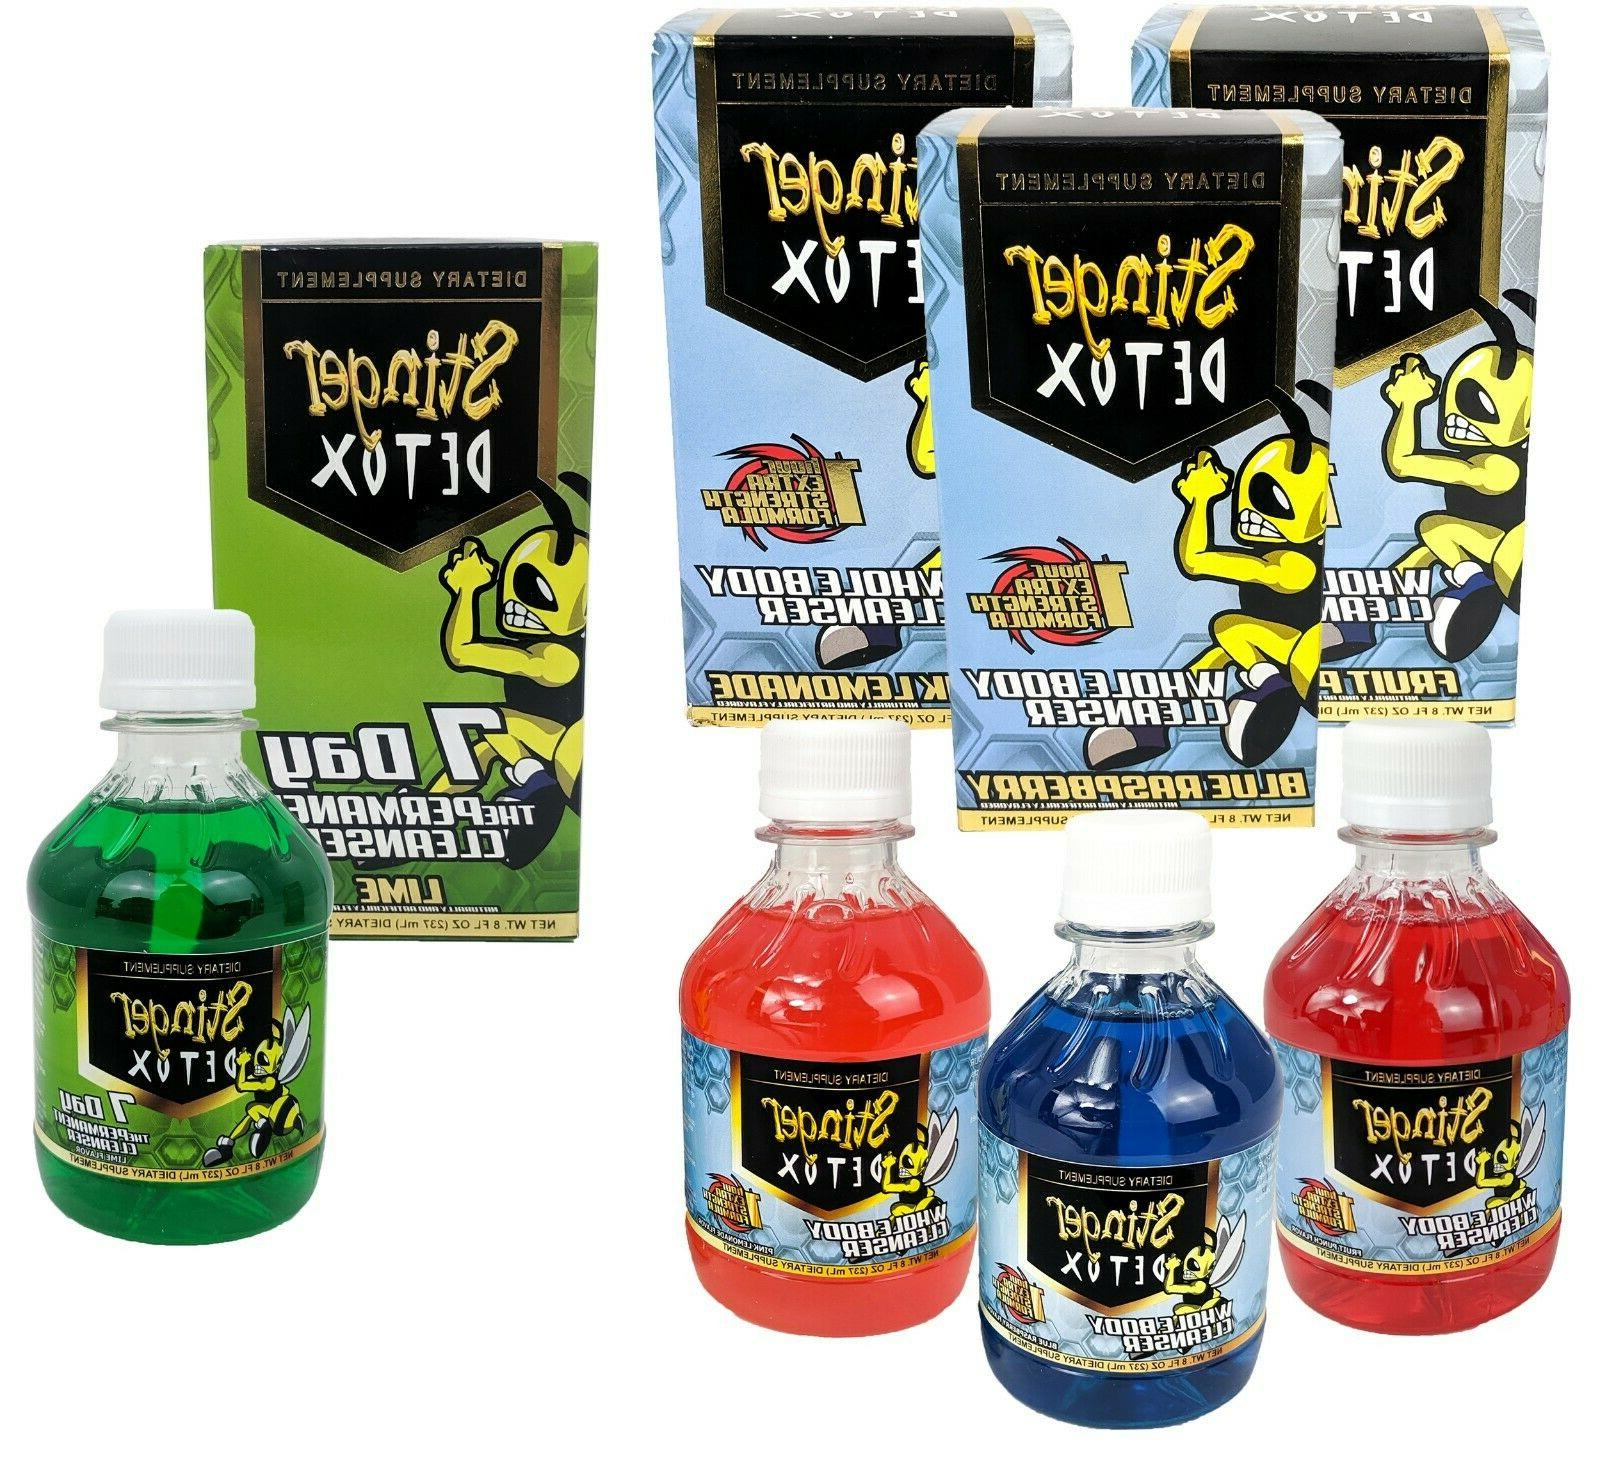 Stinger Detox 1 Hour Body, Day Cleansers, YOU CHOOSE